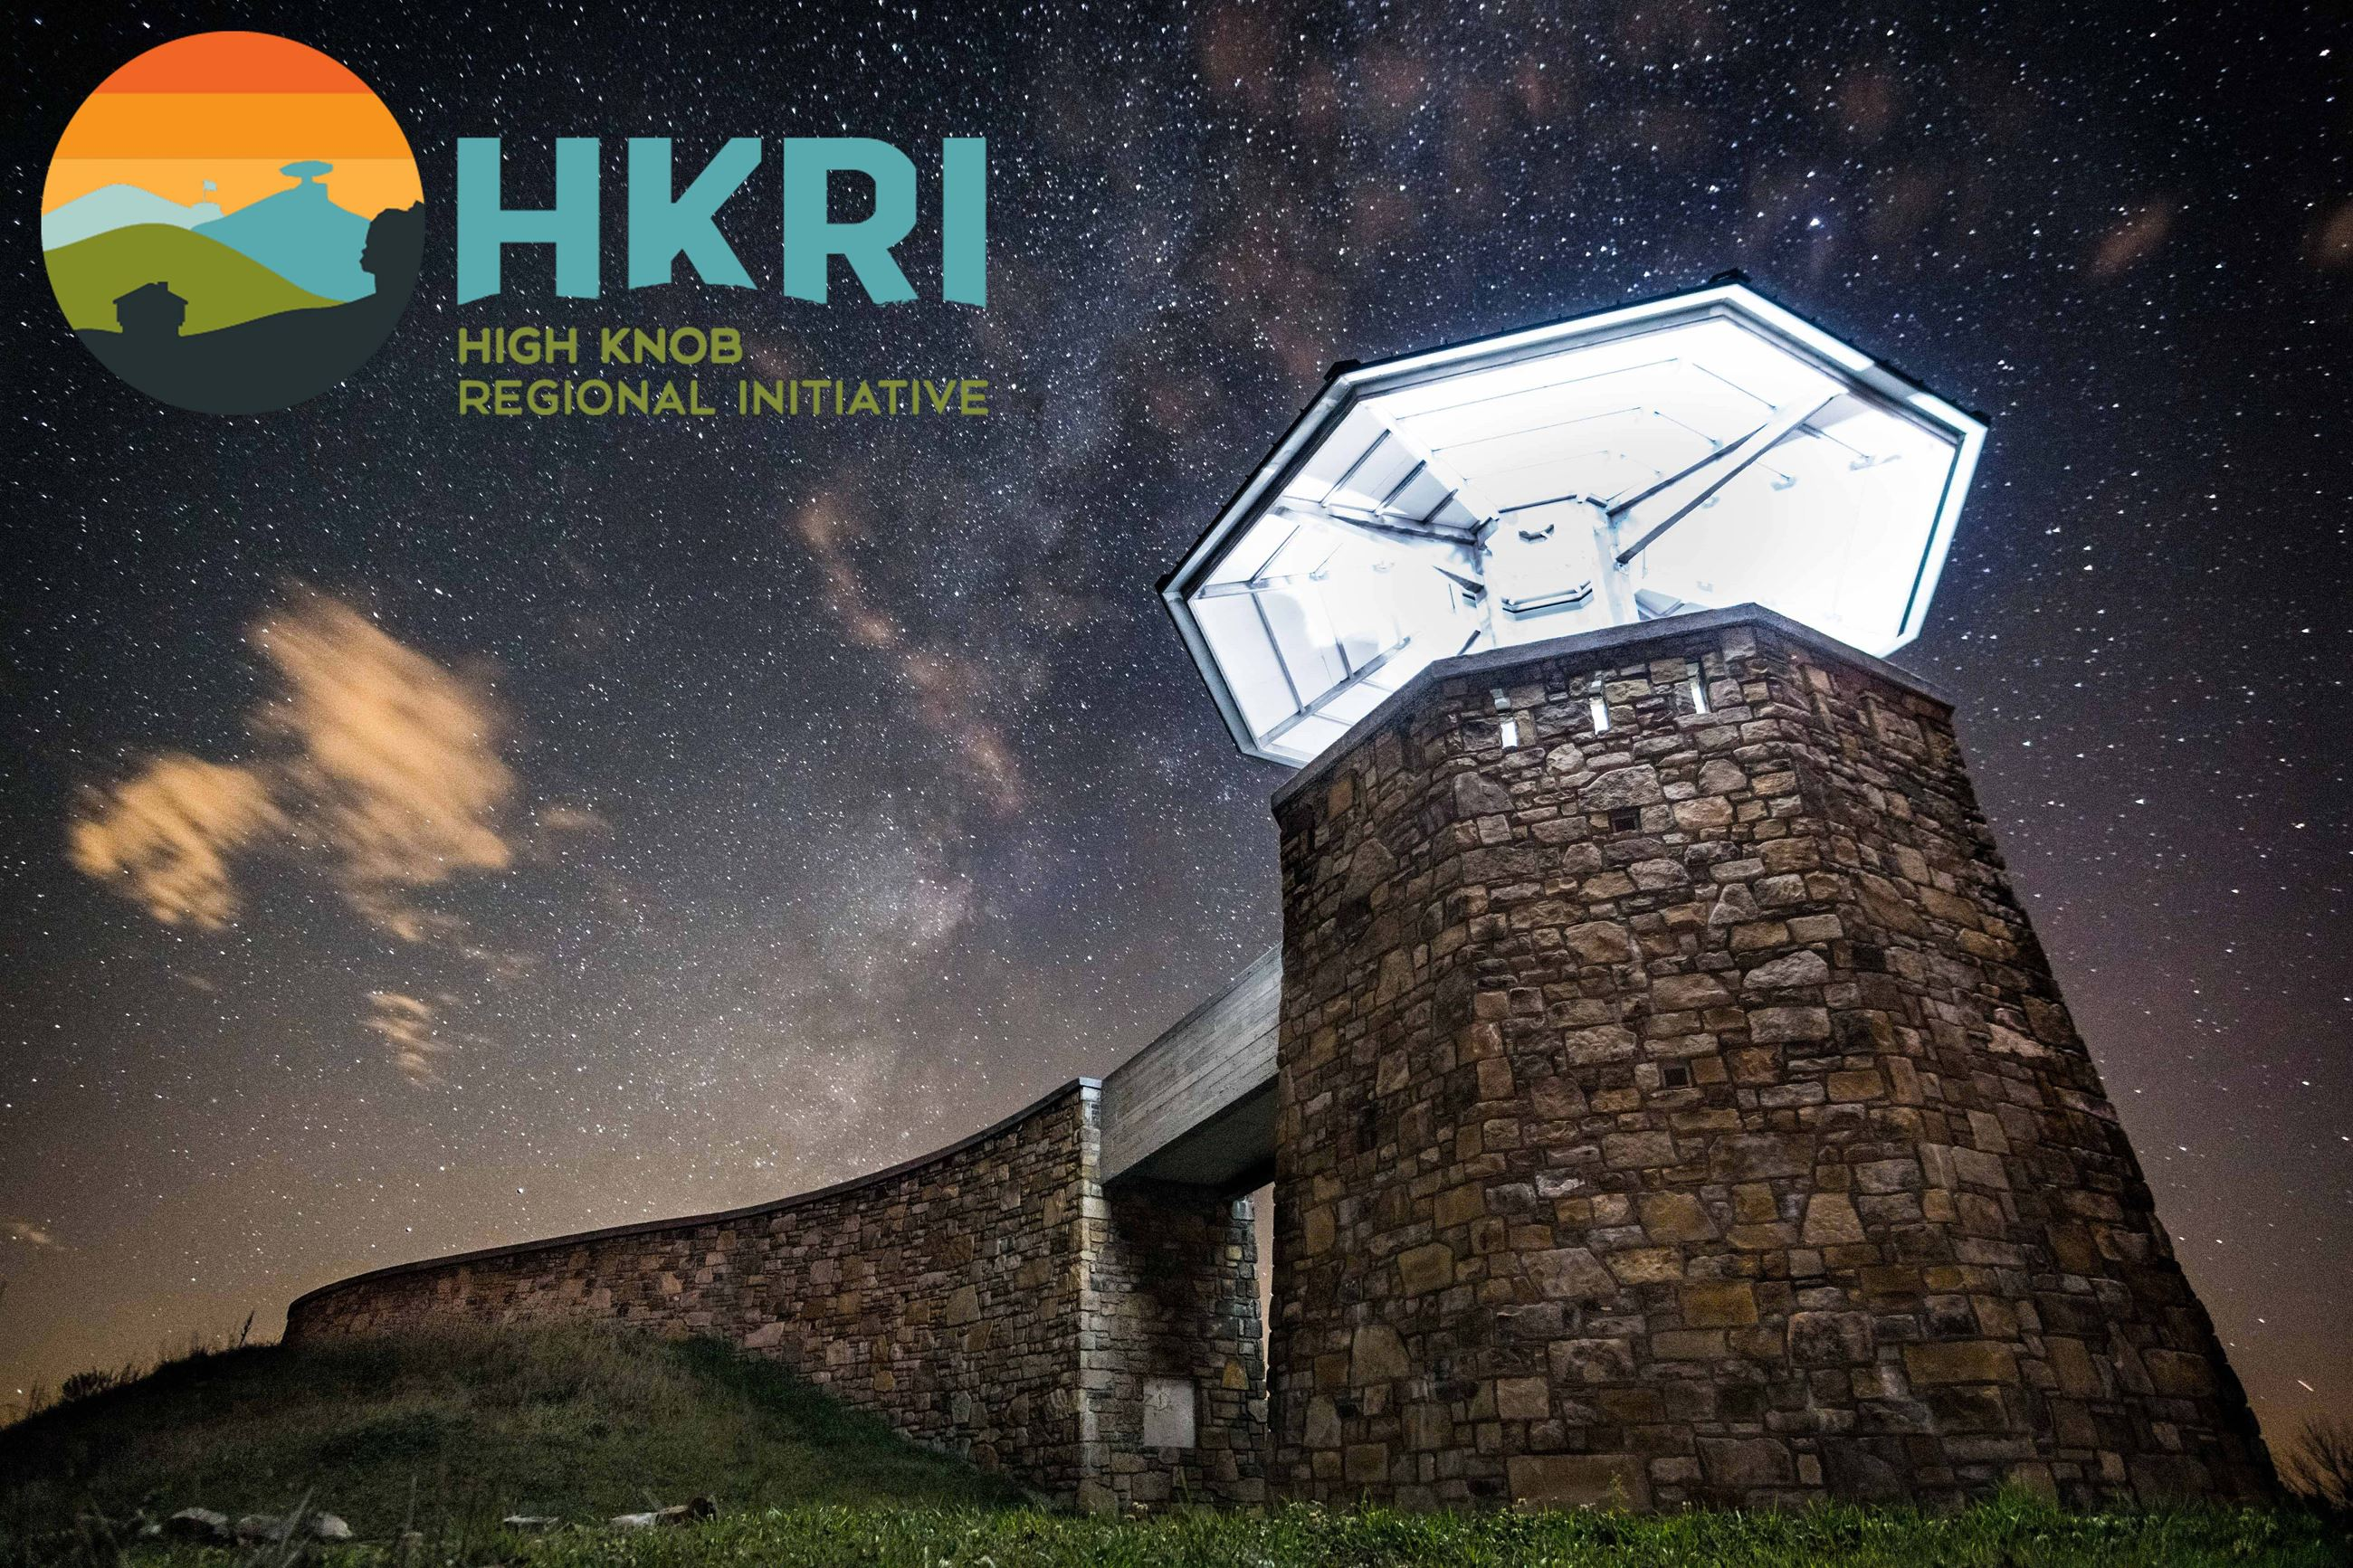 High Knob Tower with HKRI photo